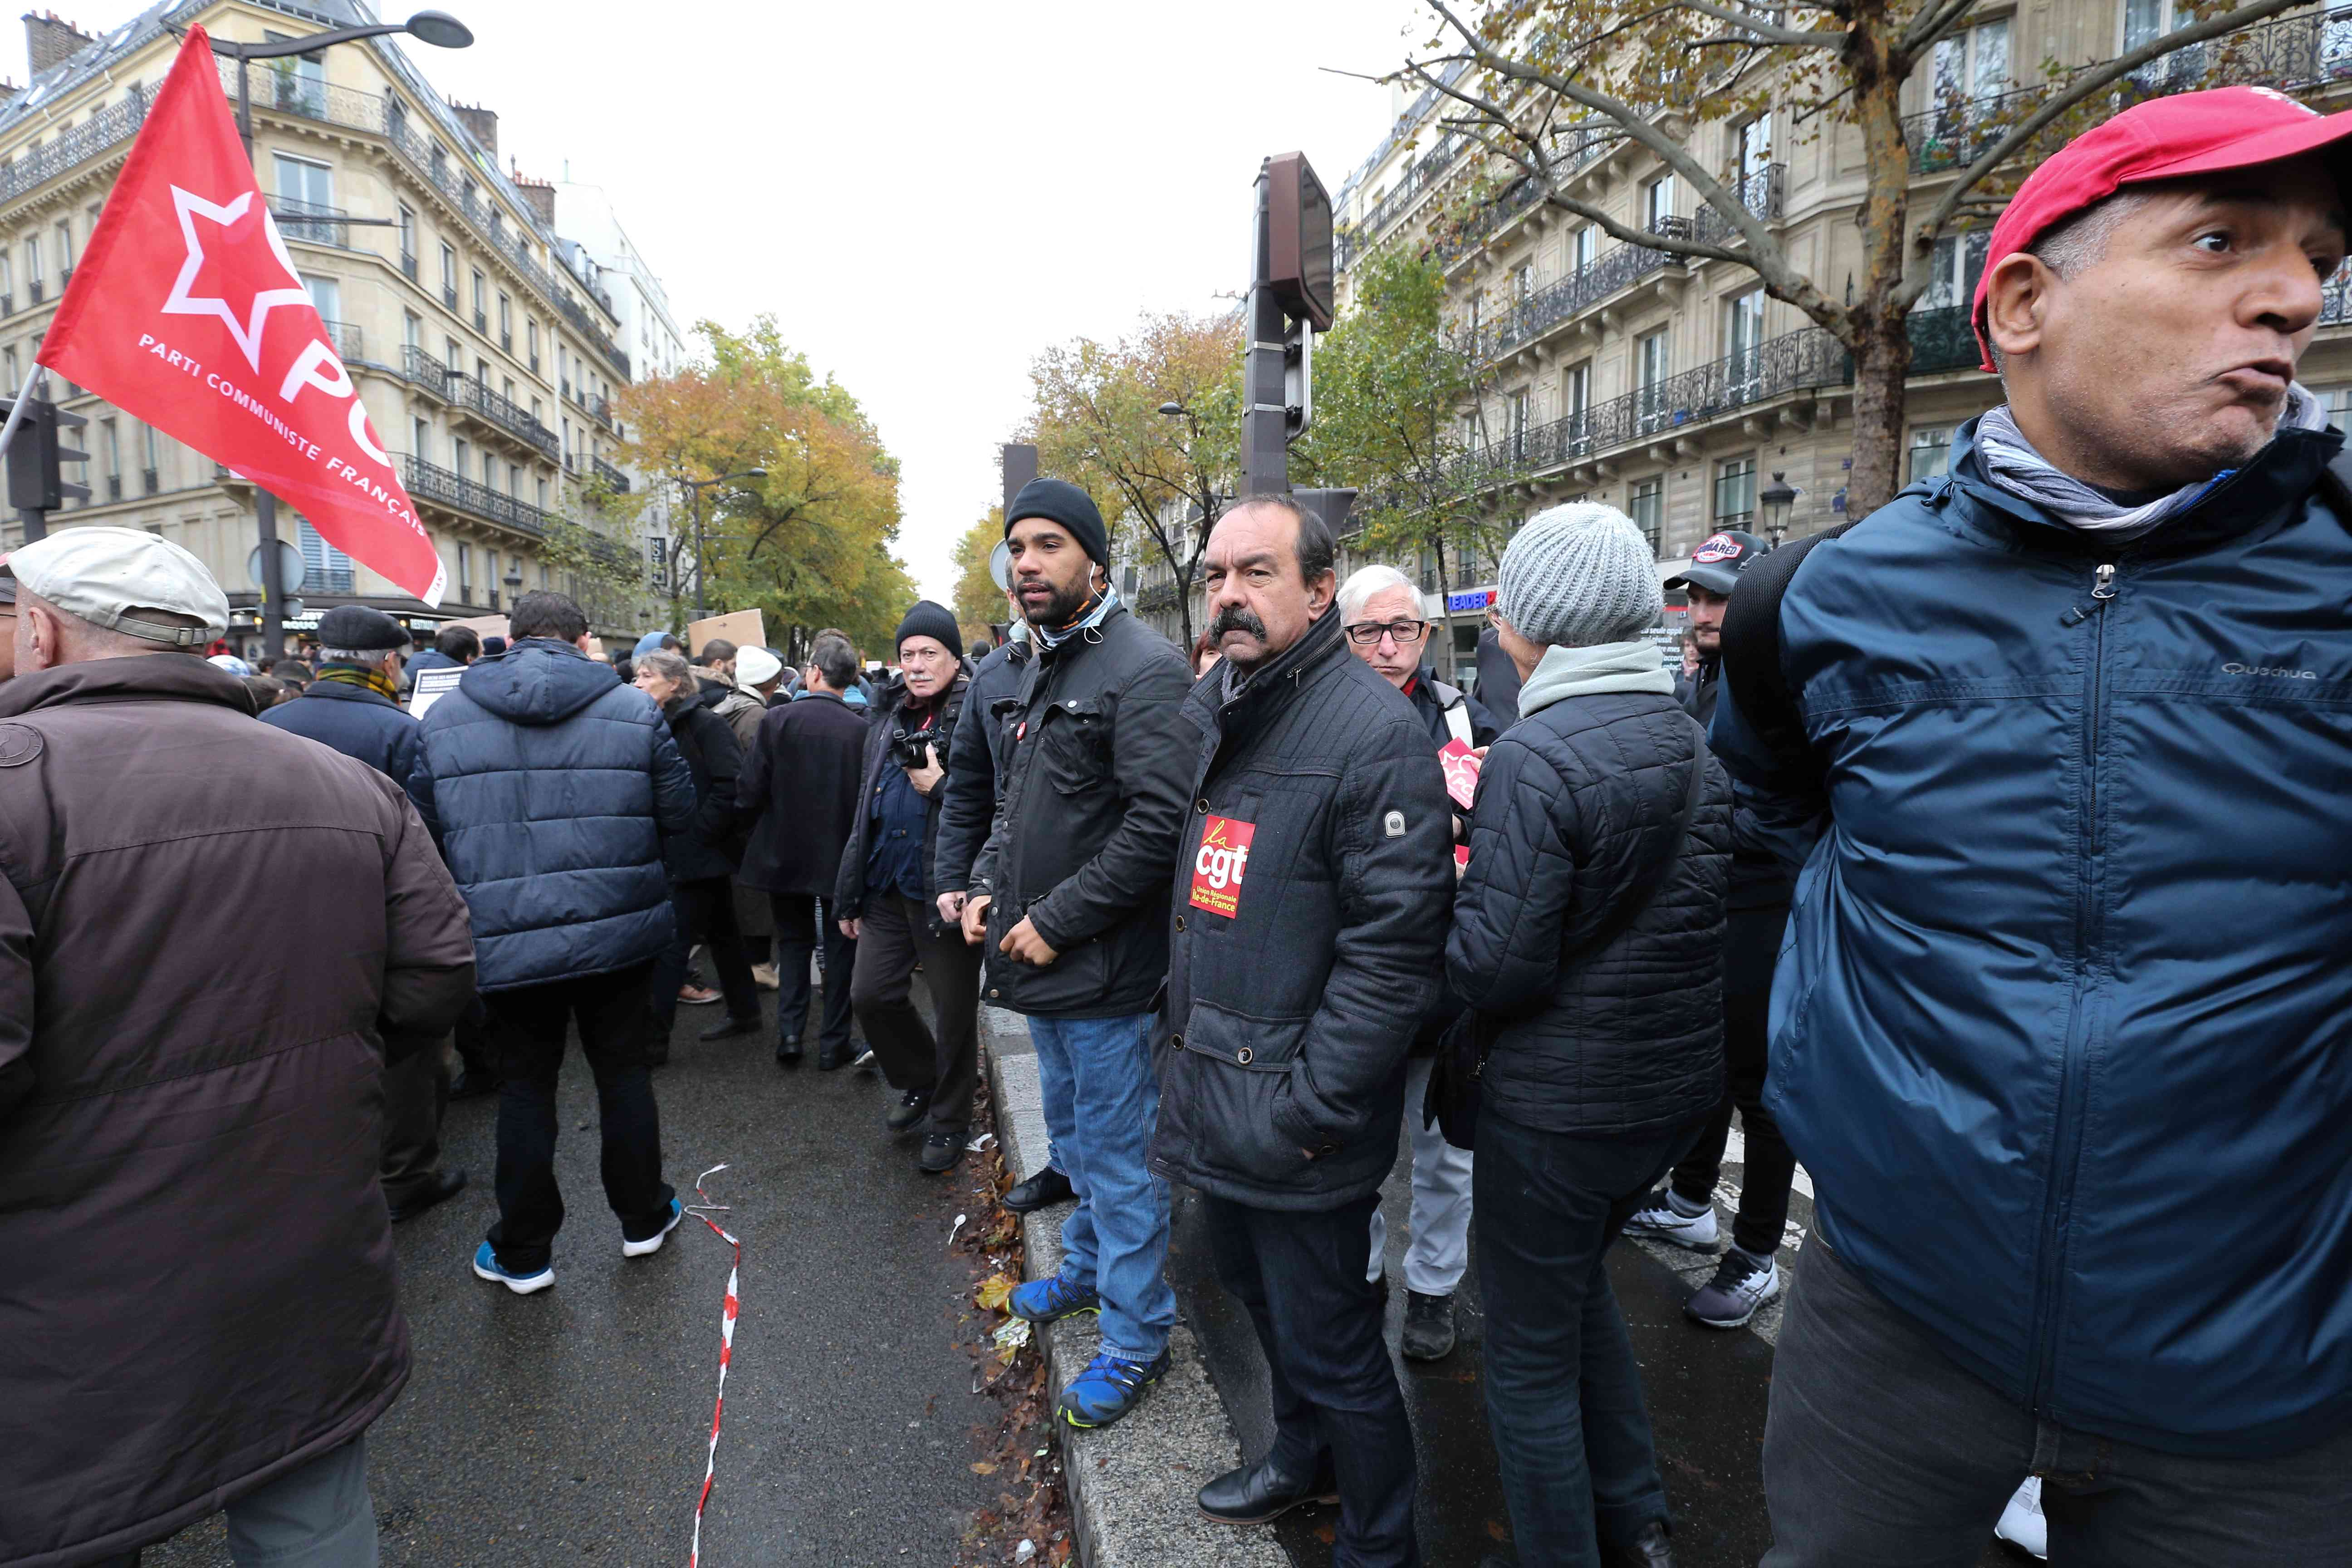 General Secretary of CGT union Philippe Martinez (3R) takes part in a march near the Gare du Nord, in Paris, on November 10, 2019, to protest against Islamophobia, at the call of several anti-racist activists and collectives.